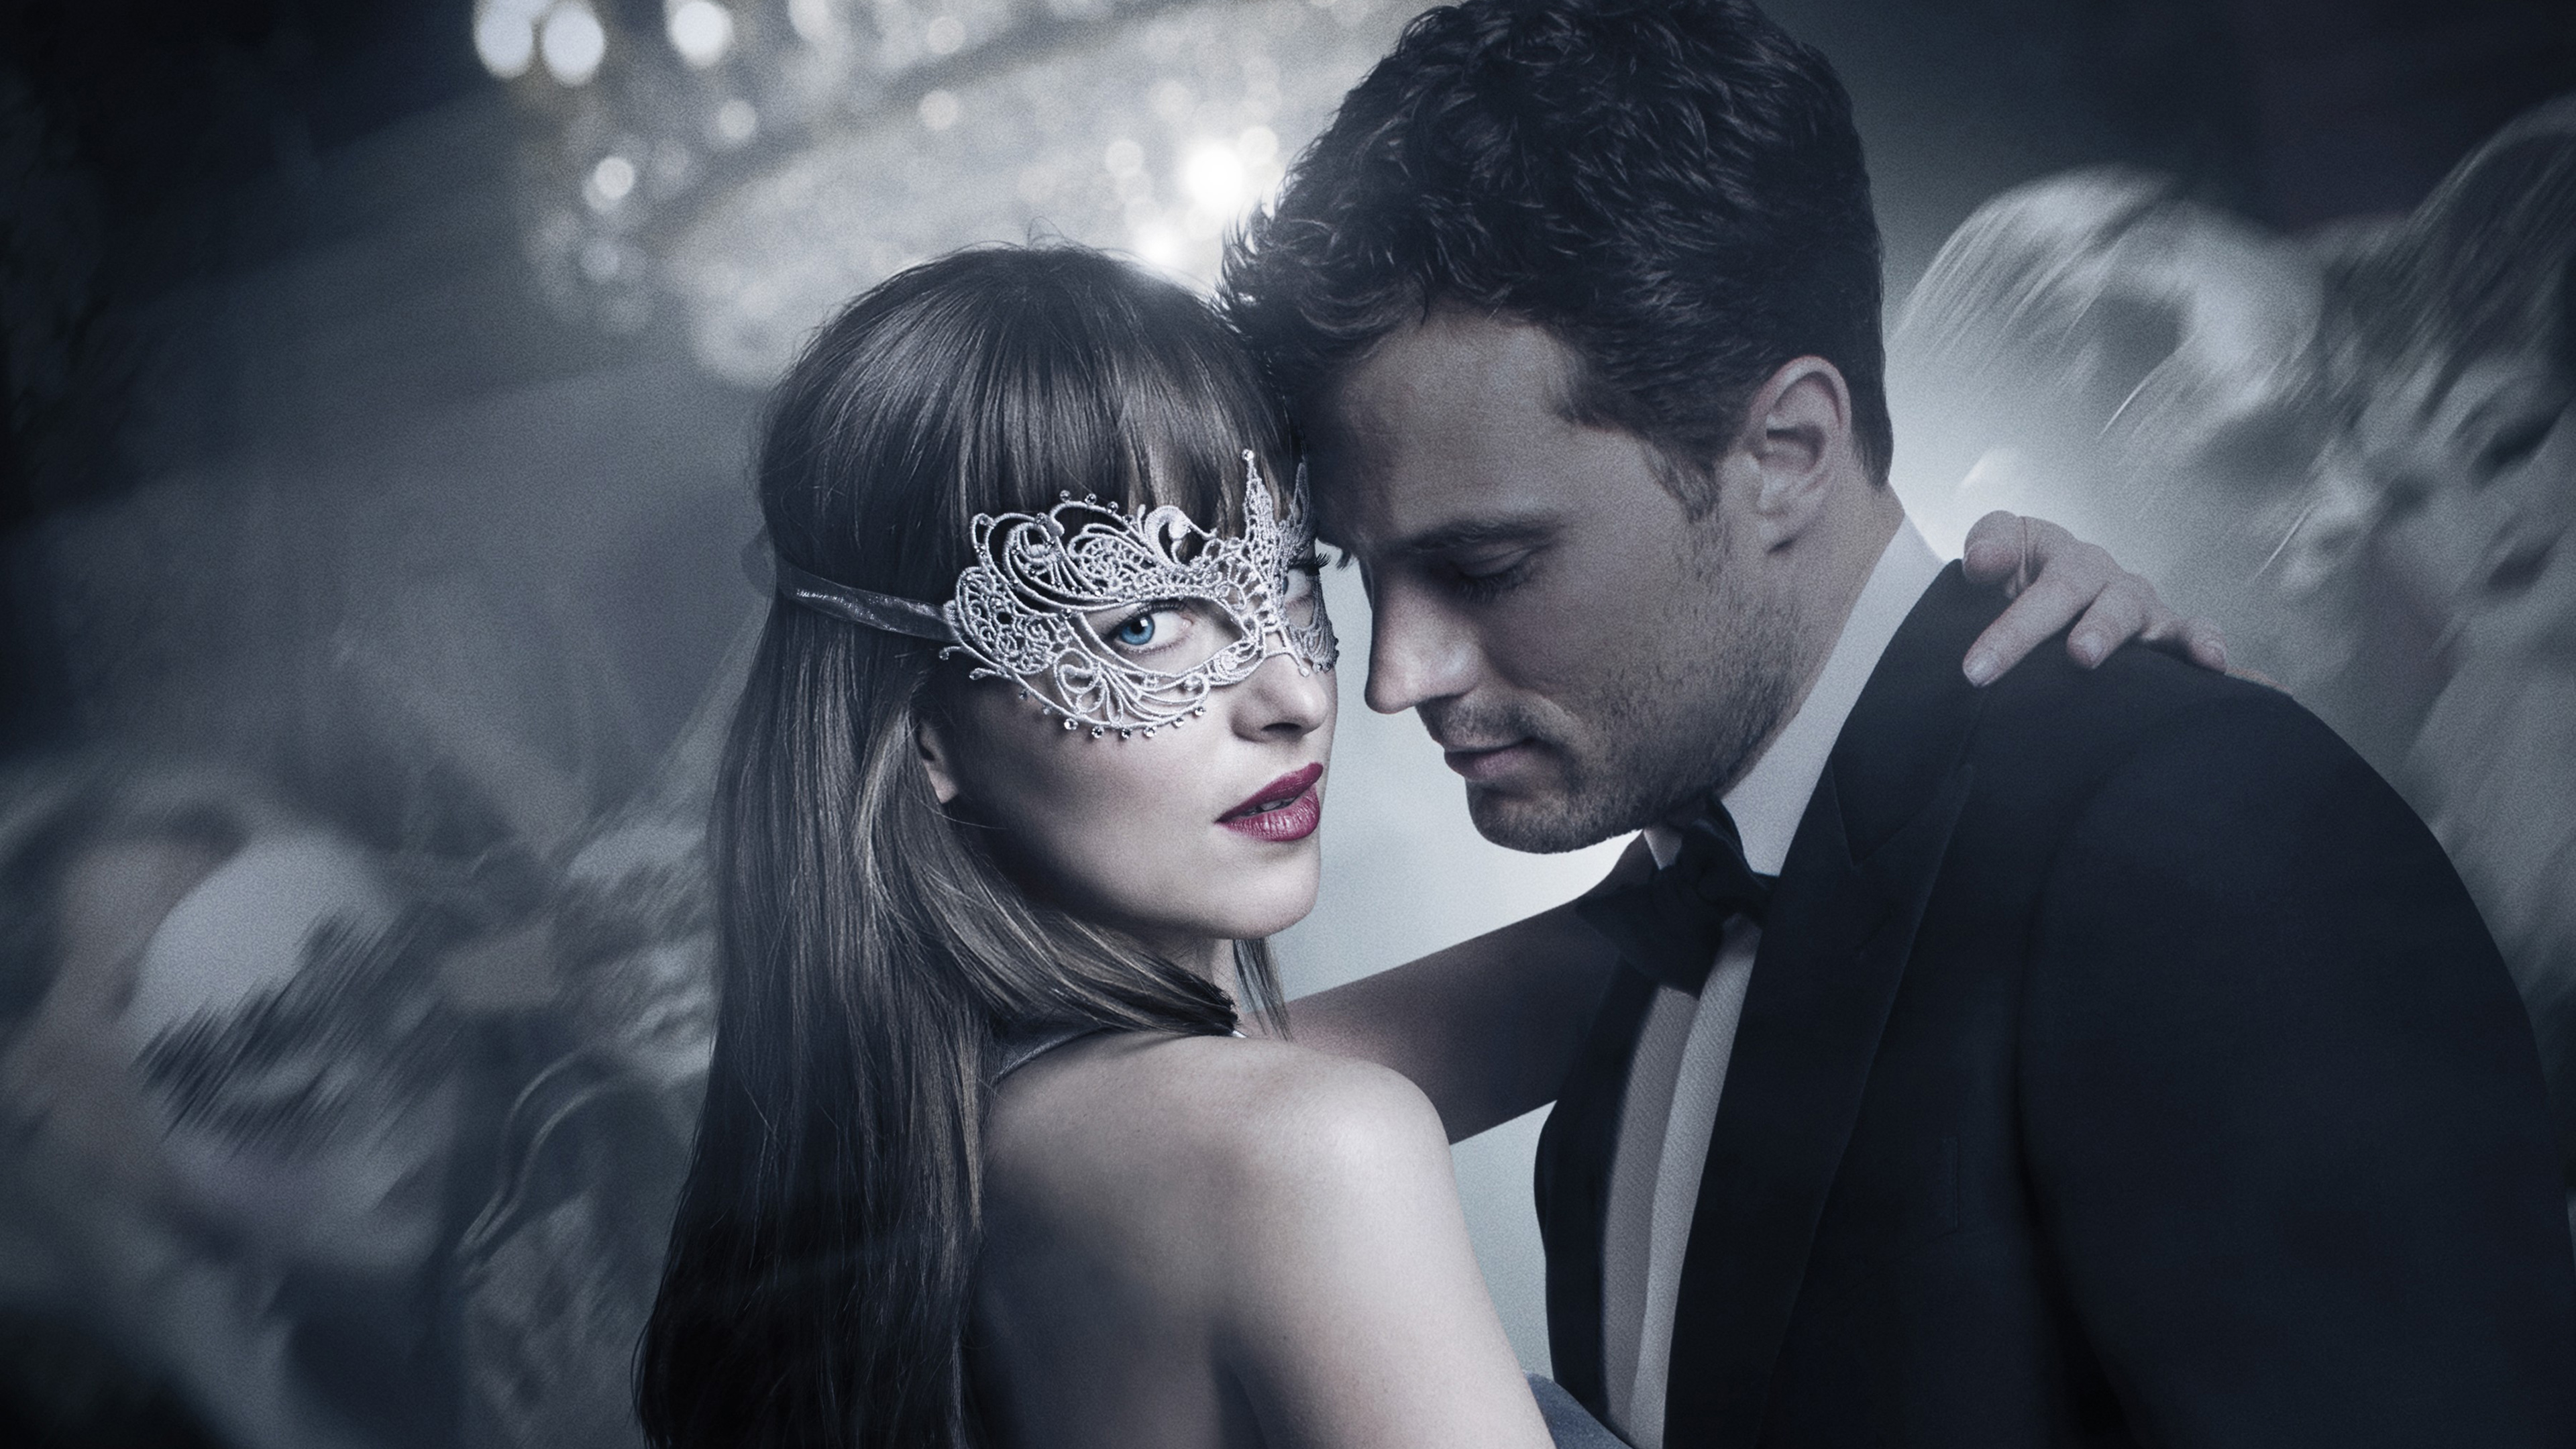 Fifty Shades Darker 2017 Movie 4k